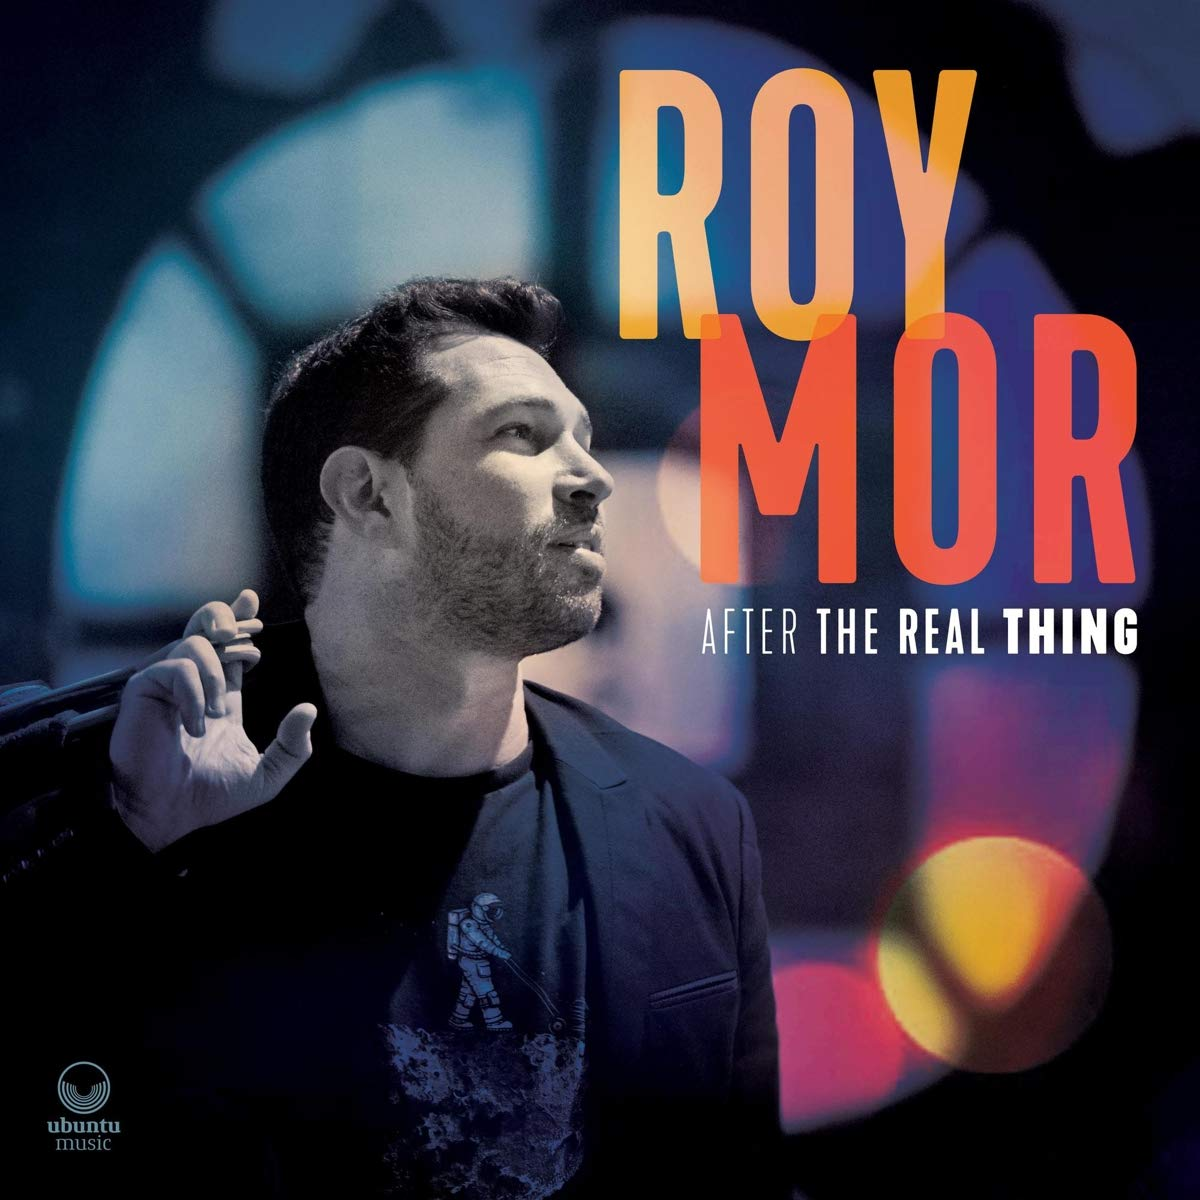 OMRI MOR - After The Real Thing cover